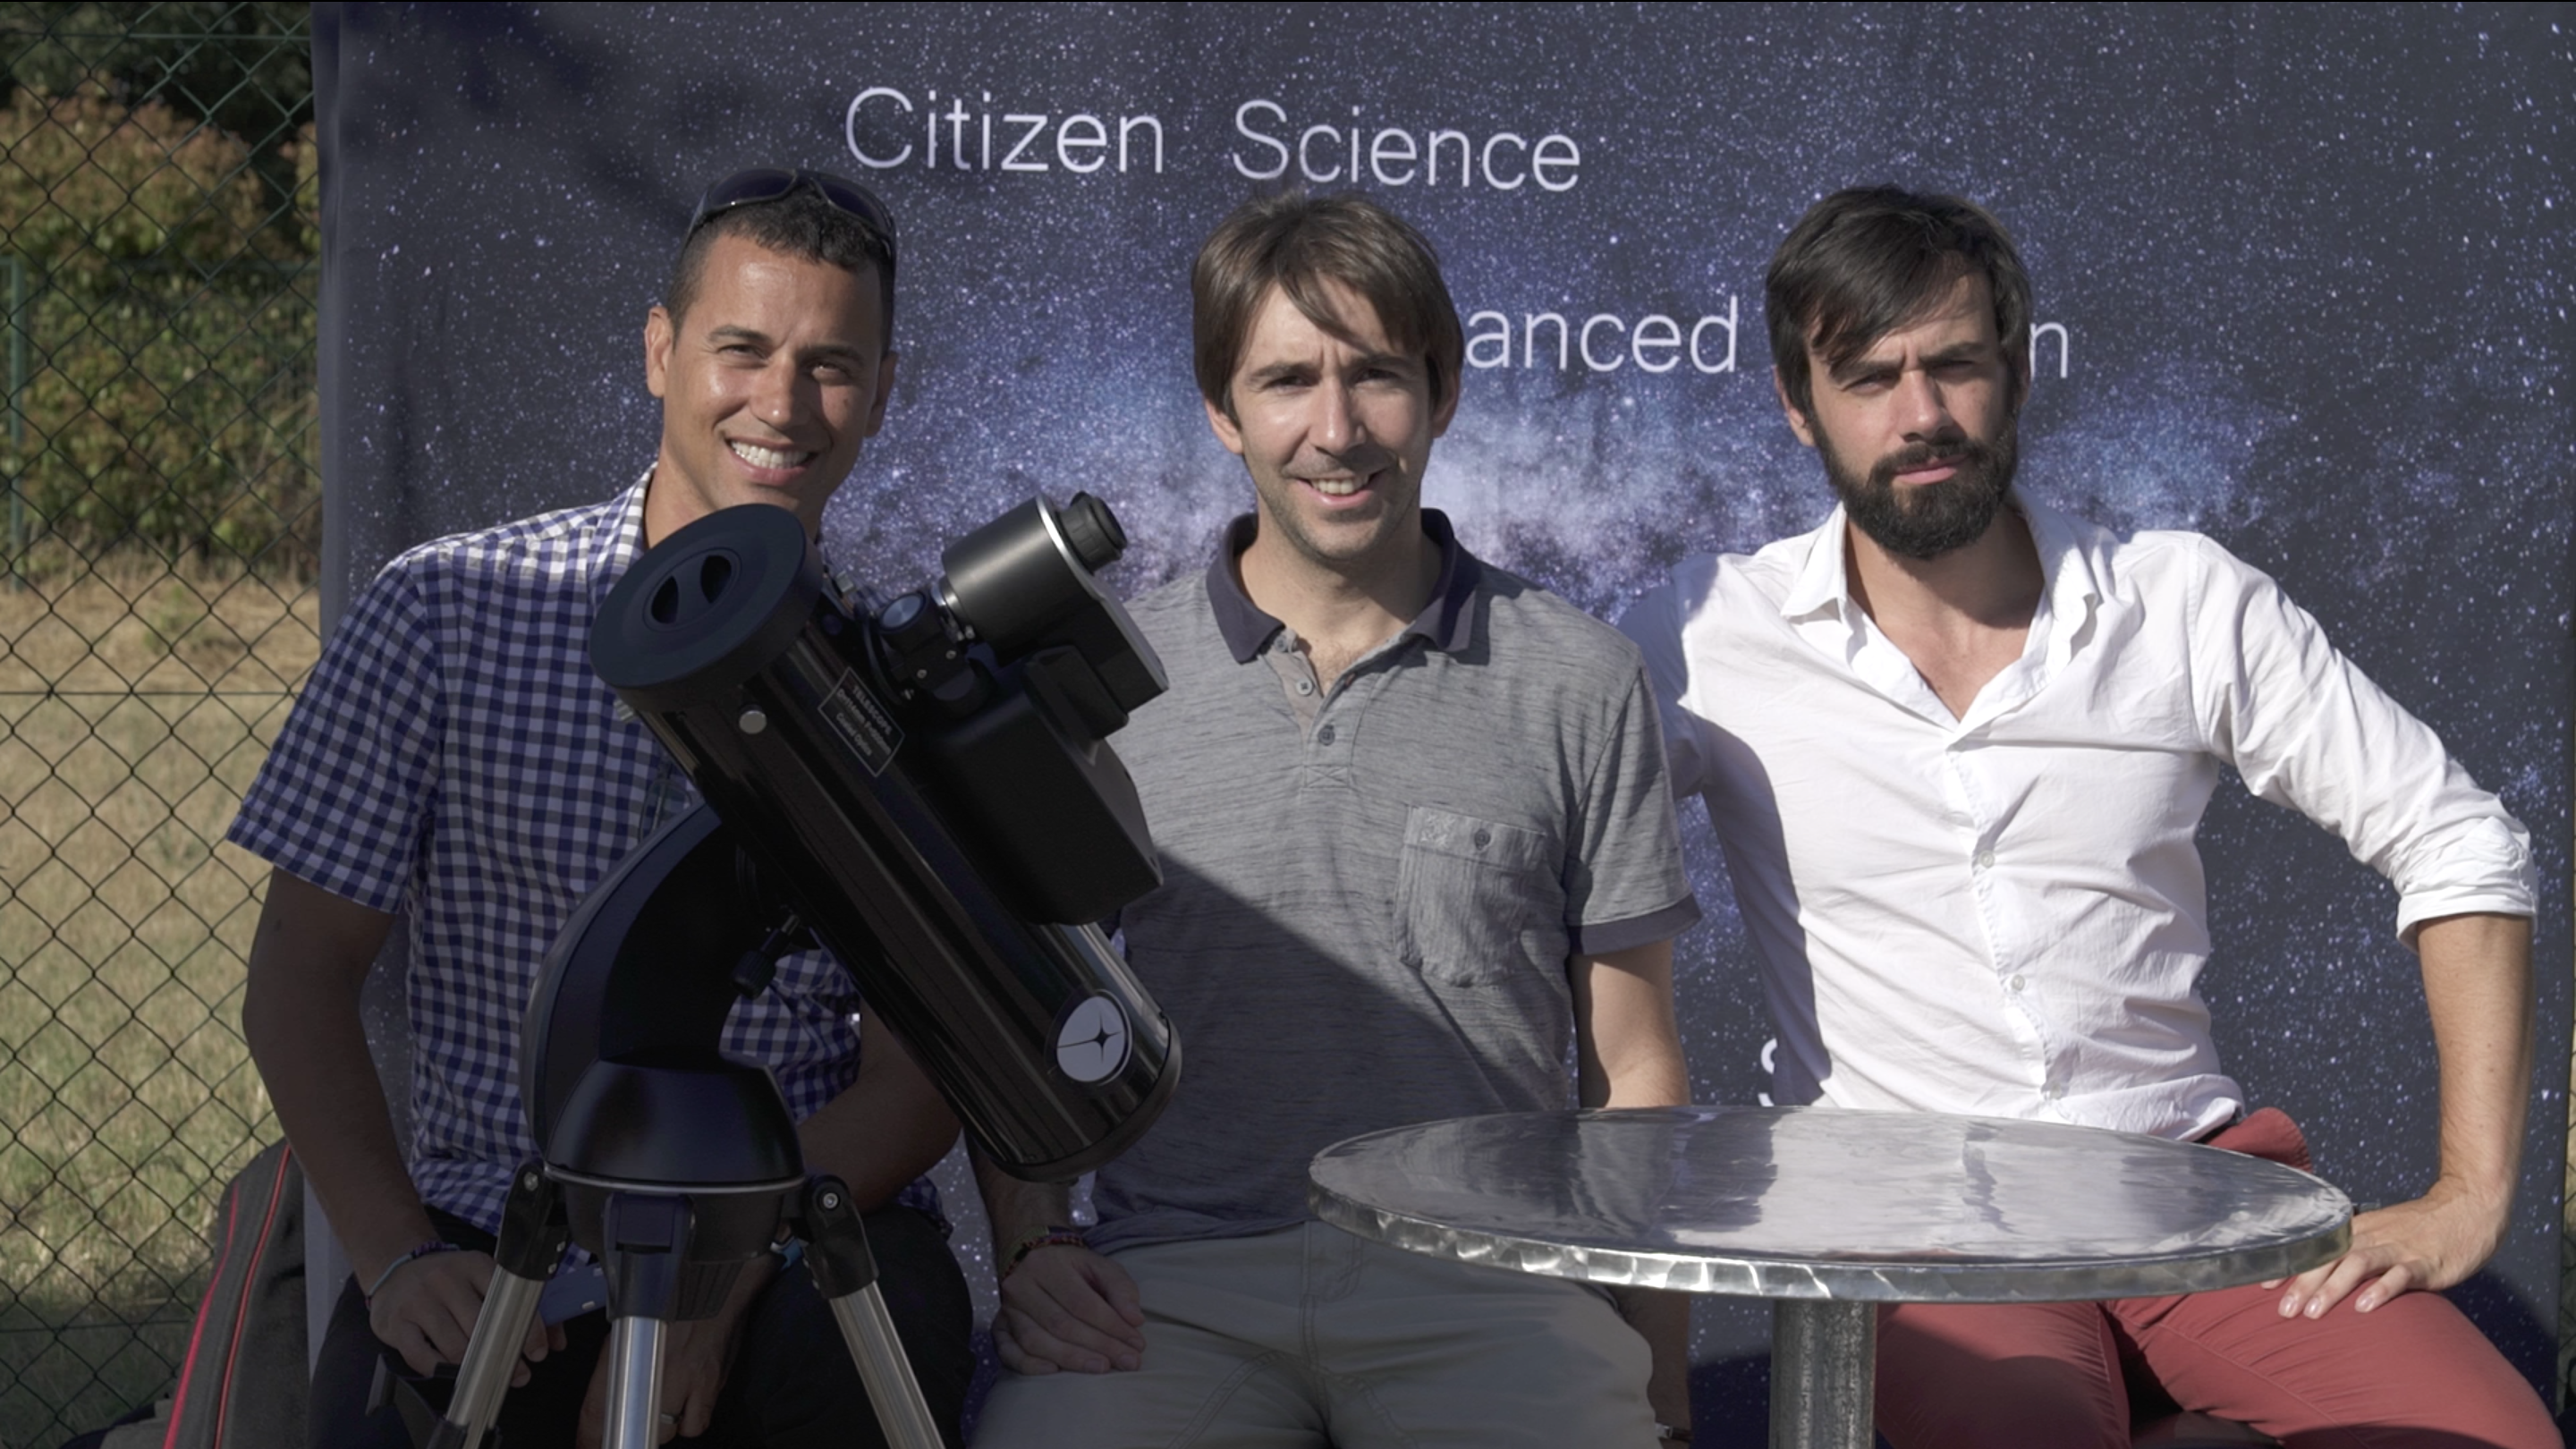 From left to right: Franck Marchis (CSO and SETI Institute astronomer), Arnaud (Chairman and CTO), Laurent (CEO) and the demo prototype shown at Aix-en-Provence, France in June 2017